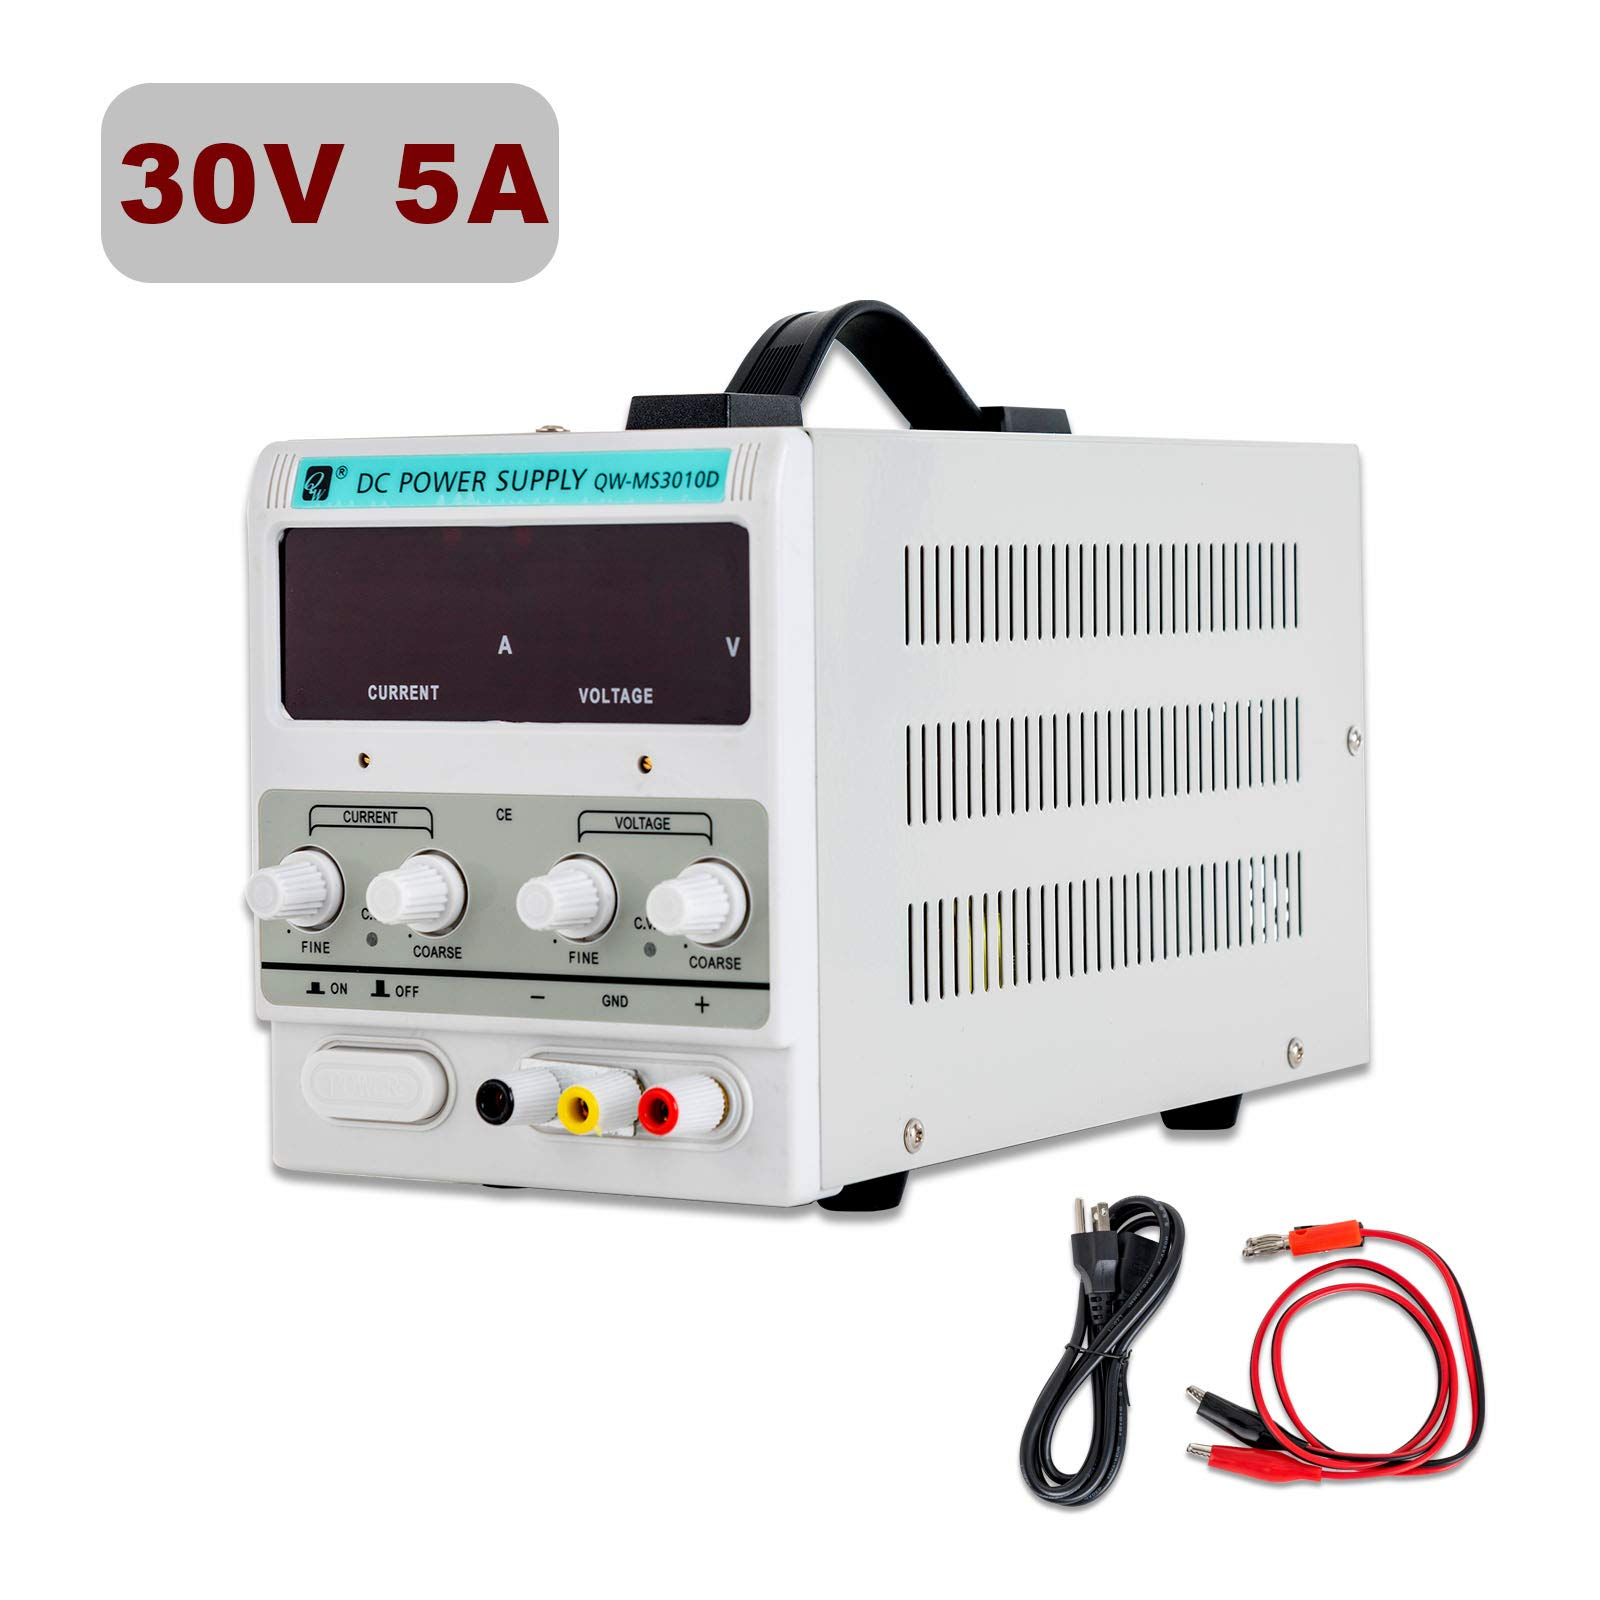 SUNCOO Variable DC Power Supply 30V 5A Adjustable Regulated Lab Bench Power Supply with Digital LED Display Alligator Clip Cable, US Standard Cord